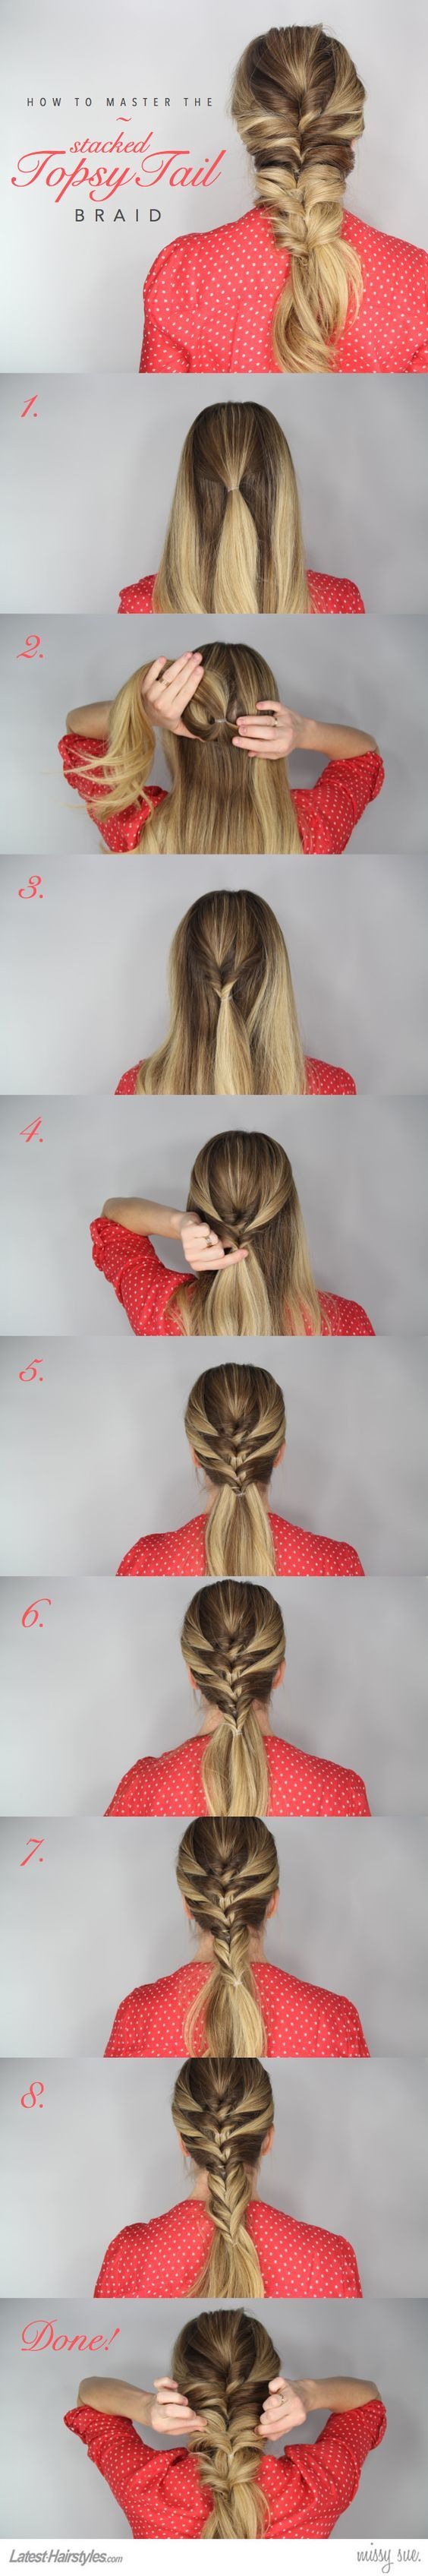 7 Ways To Style Your Hair For Every Summer Occasion - Page 5 of 5 - Trend To Wear